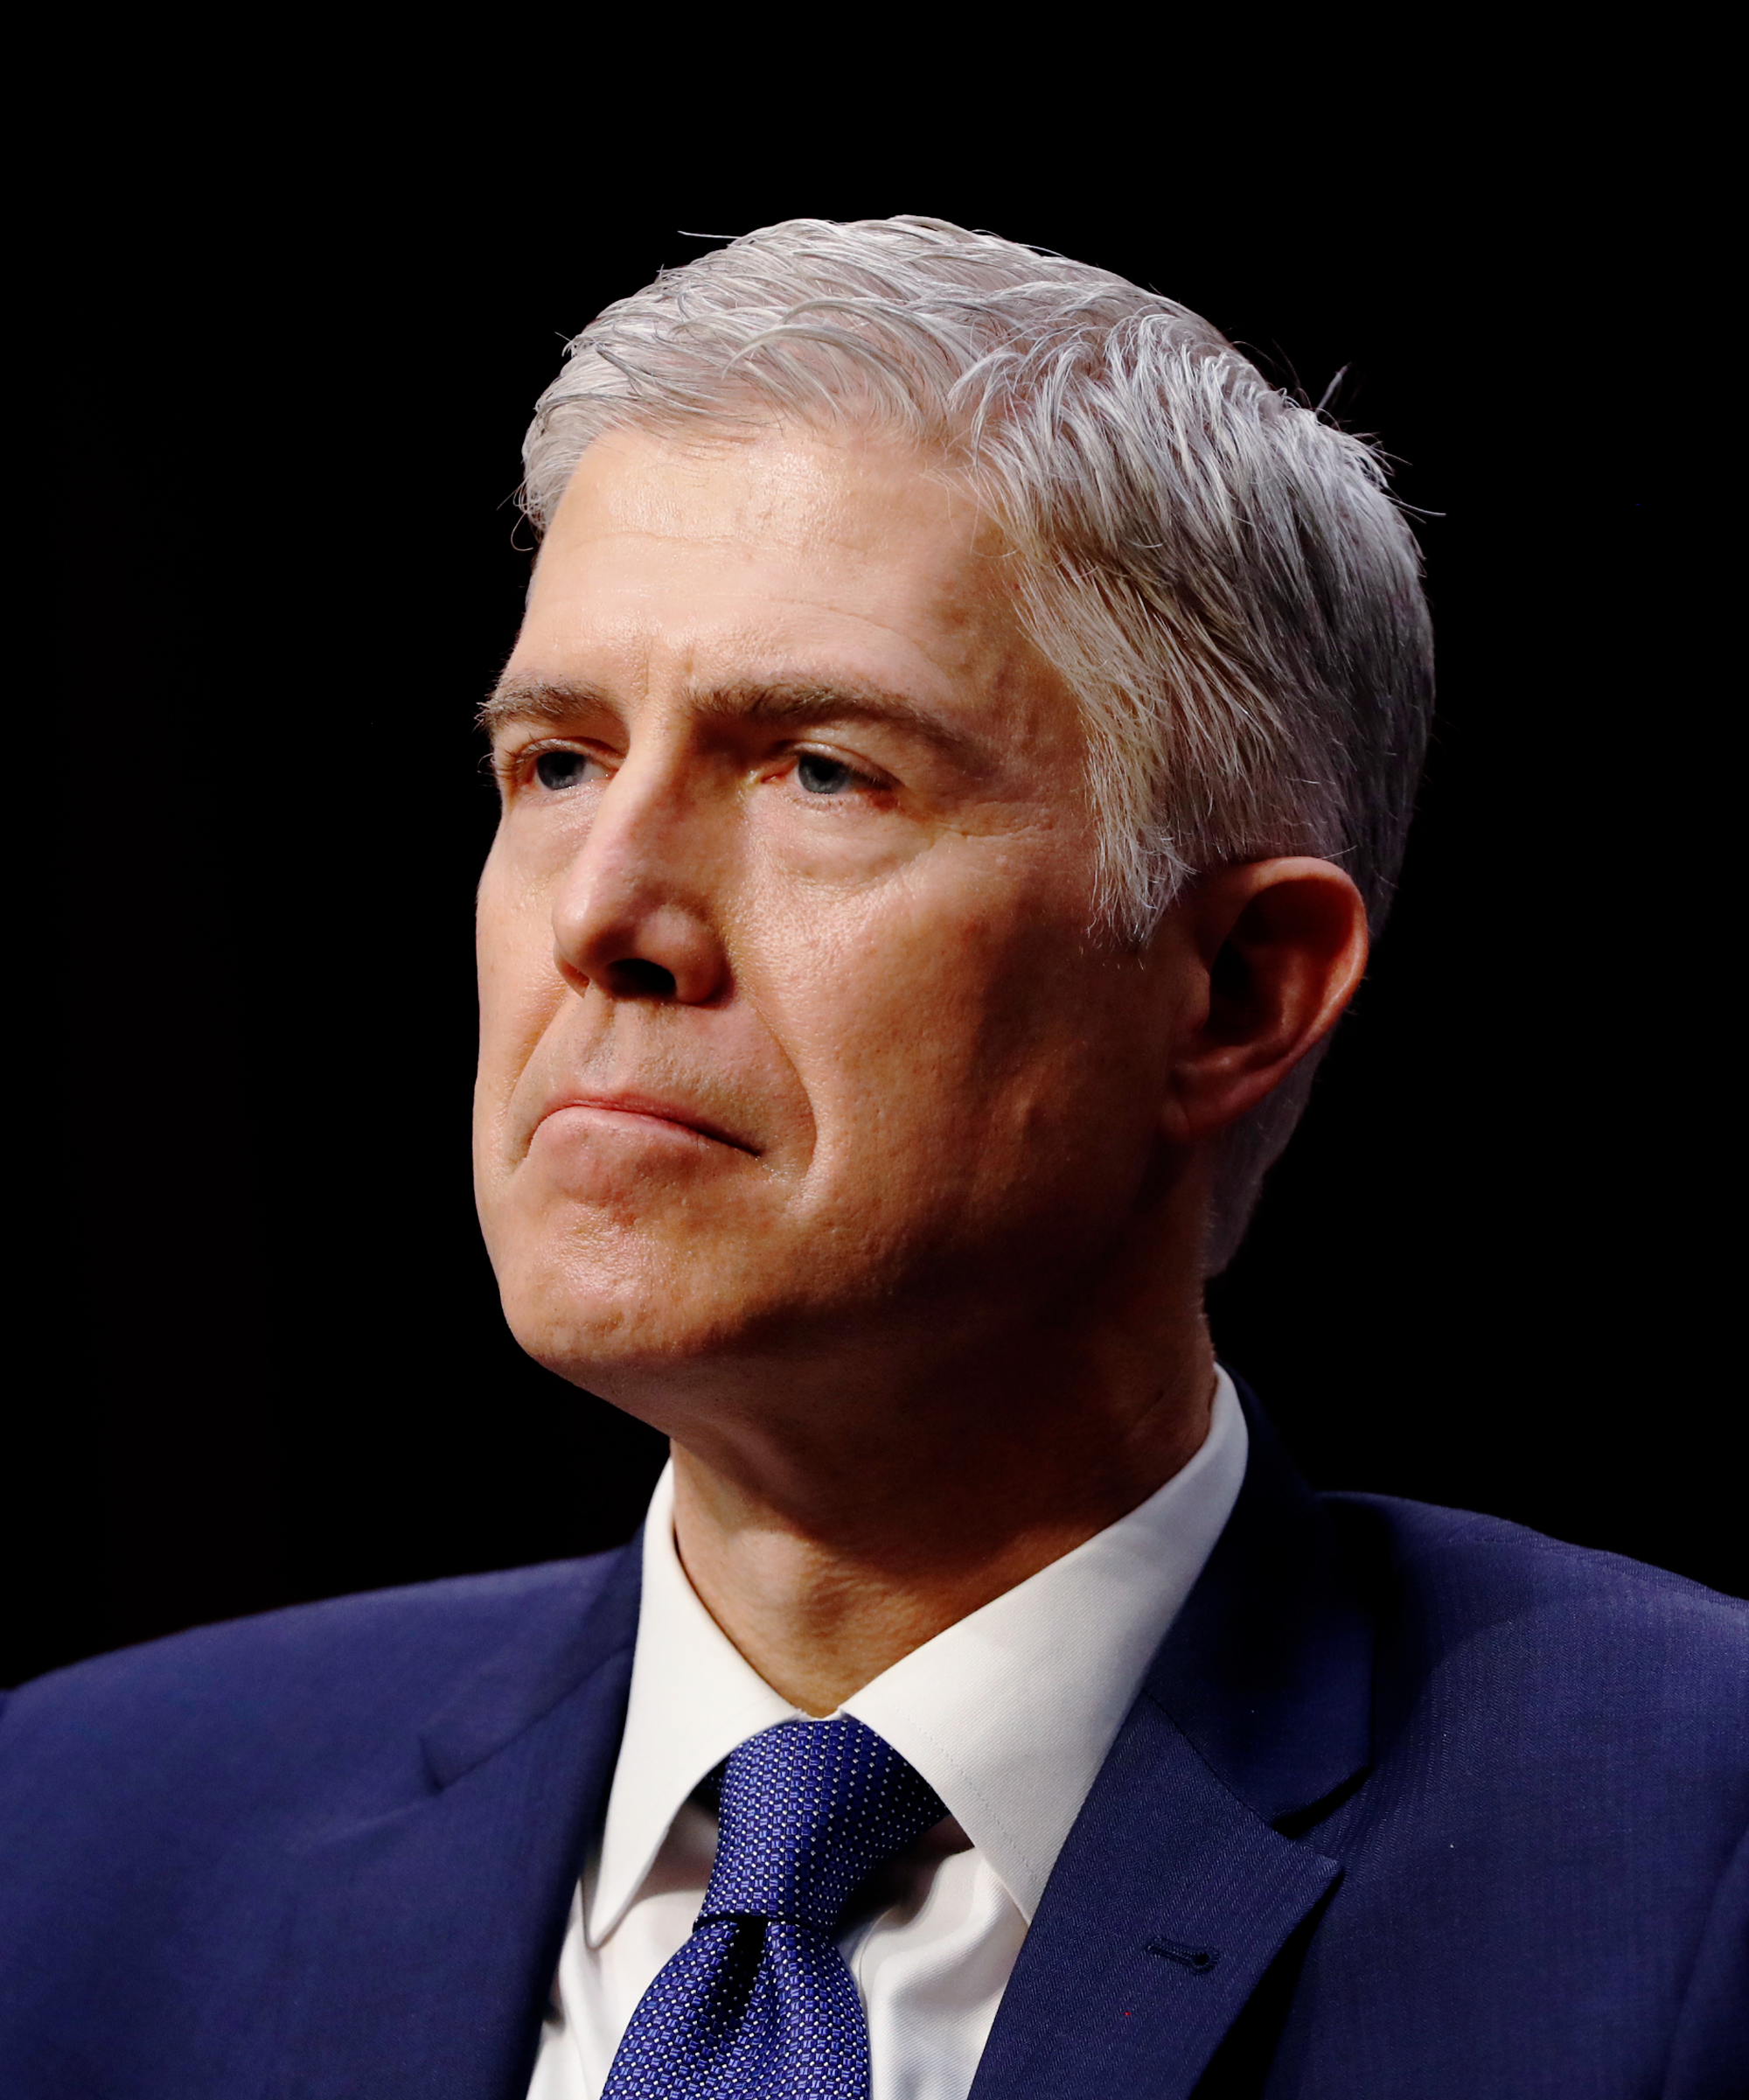 Gorsuch Confirmed By The Senate To the Supreme Court